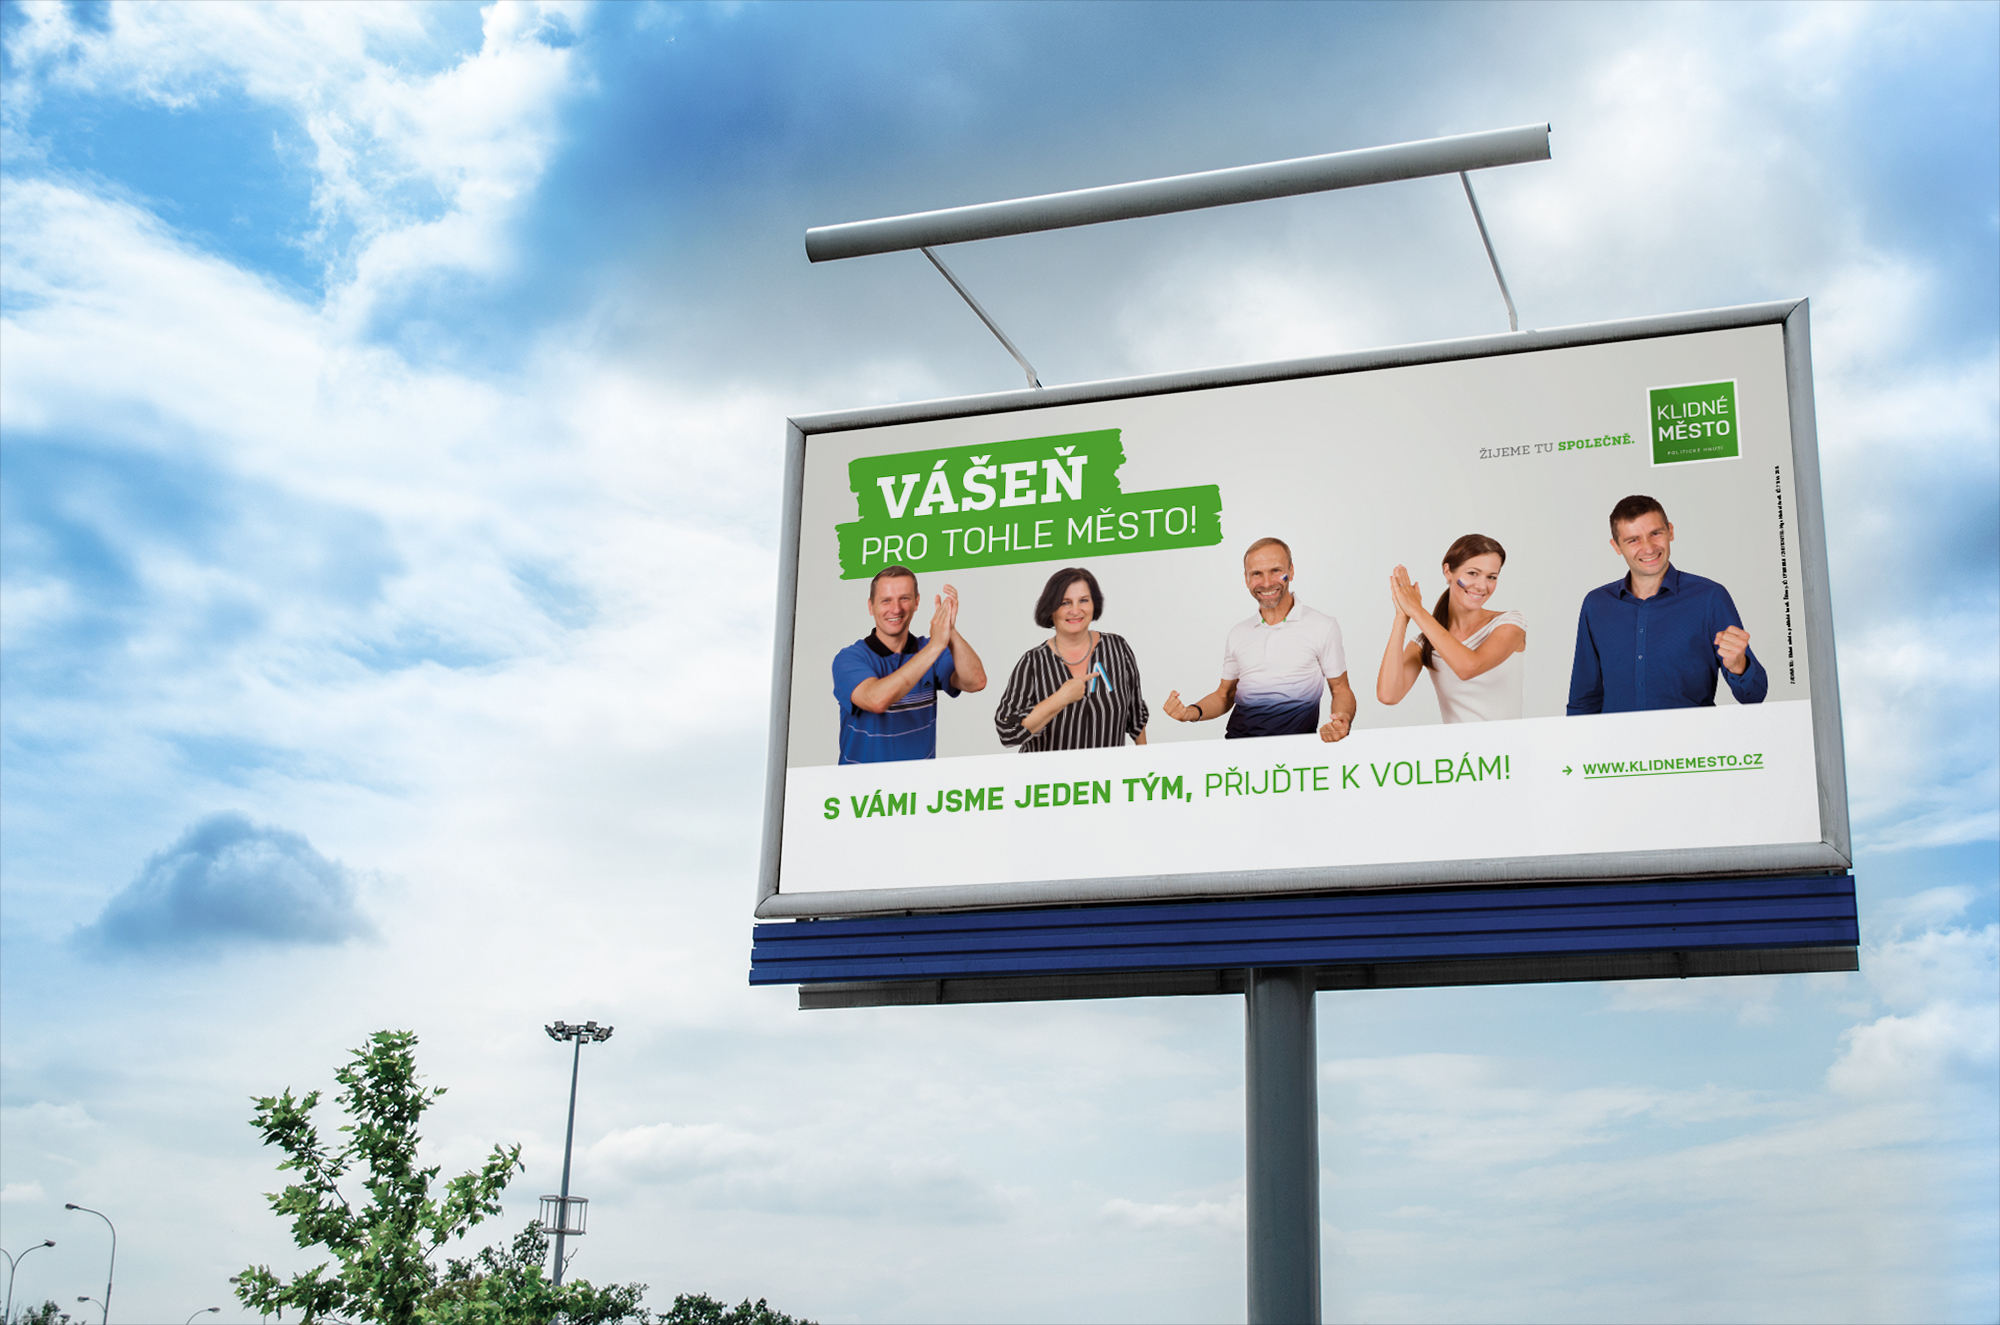 [album/Products_Model_Product/111/Klidne_mesto_billboard_mockup.jpg]